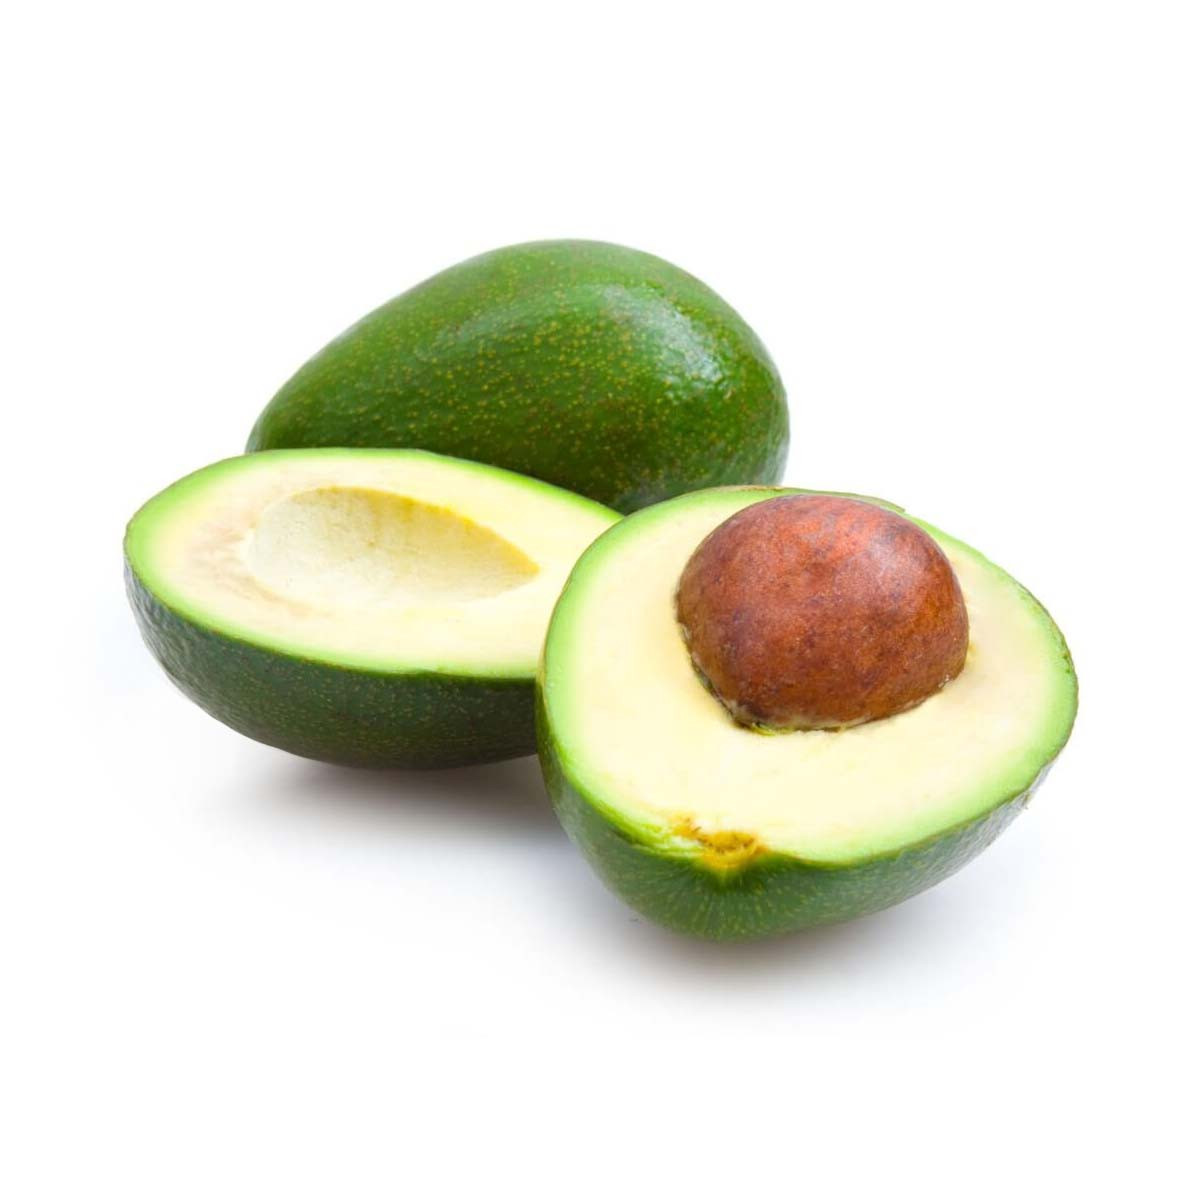 AGUACATE PAPELILLO KL